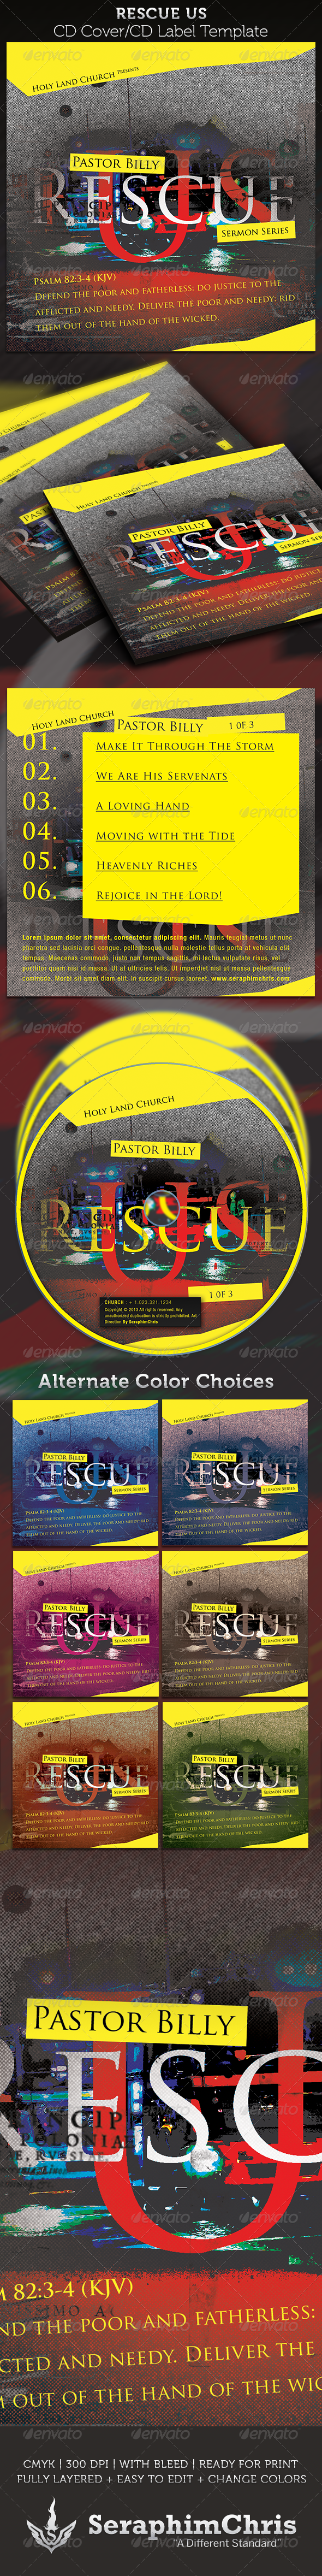 Rescue US CD Cover Artwork Template - CD &amp; DVD artwork Print Templates